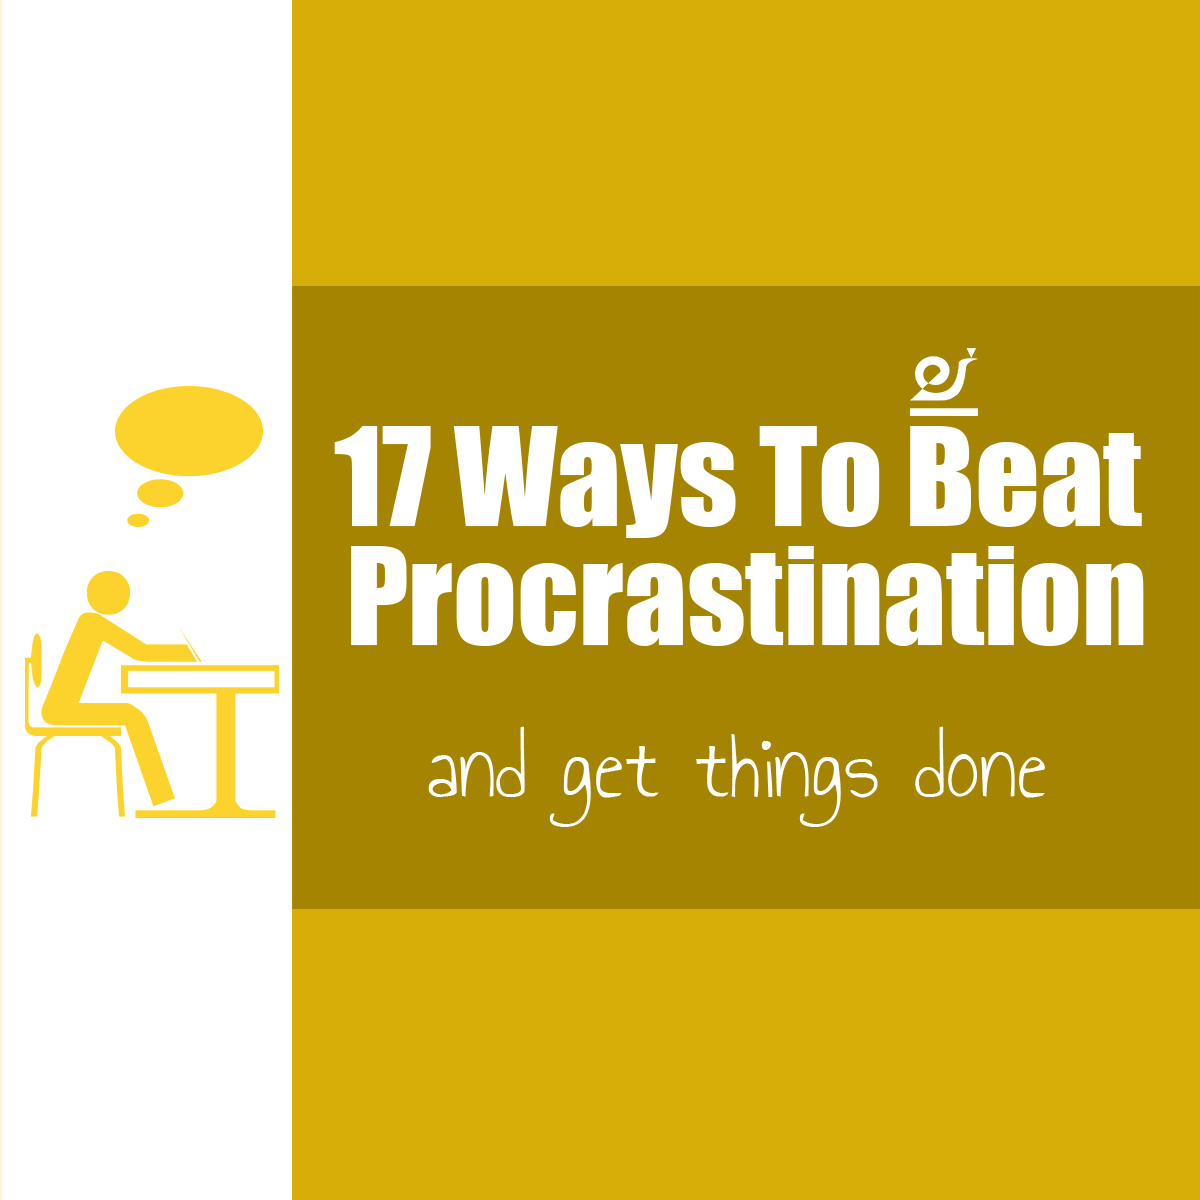 17 ways to beat procrastination and get things done.